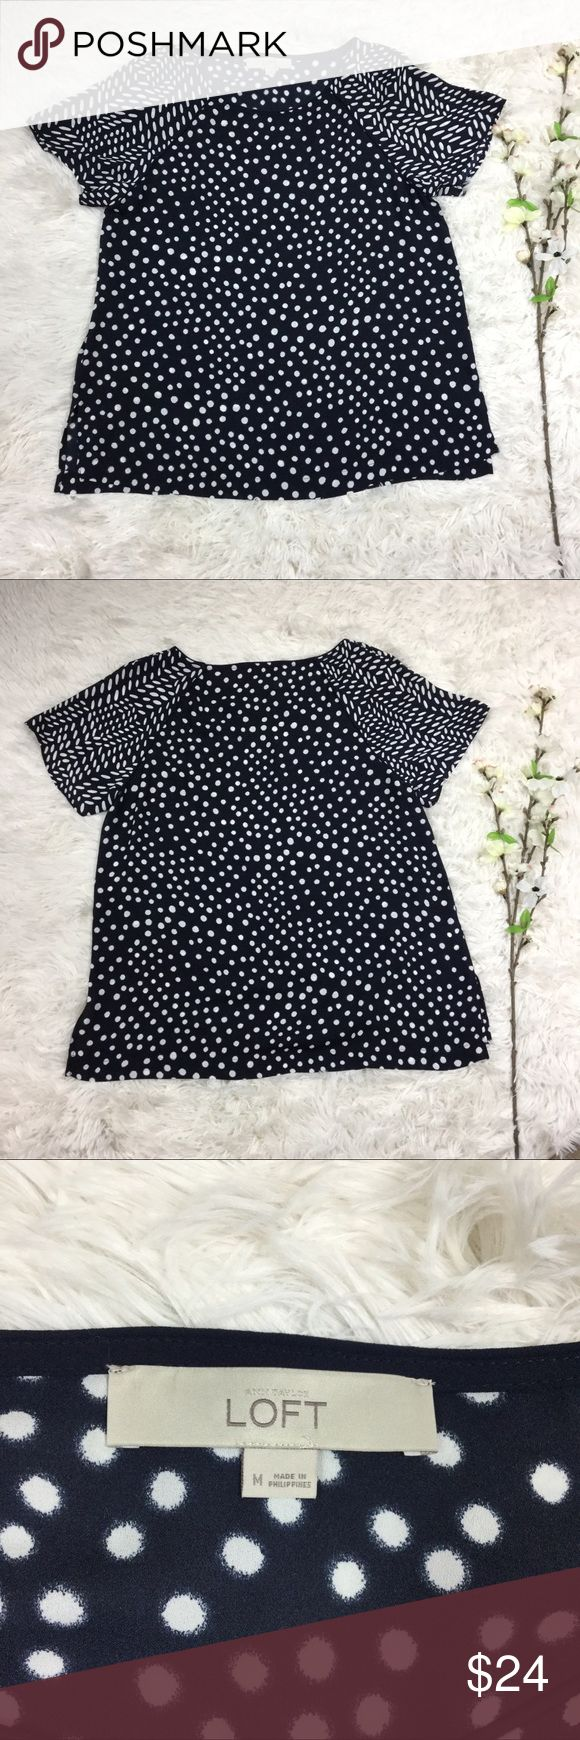 """LOFT navy blue & polka dot short sleeve sheer top Navy blue blouse top from LOFT. Semi sheer polyester material with white polka dots and specks on short sleeves. Size M, measurements included are appropriate bust 18"""" length 24"""". Great condition, no flaws. LOFT Tops Blouses"""